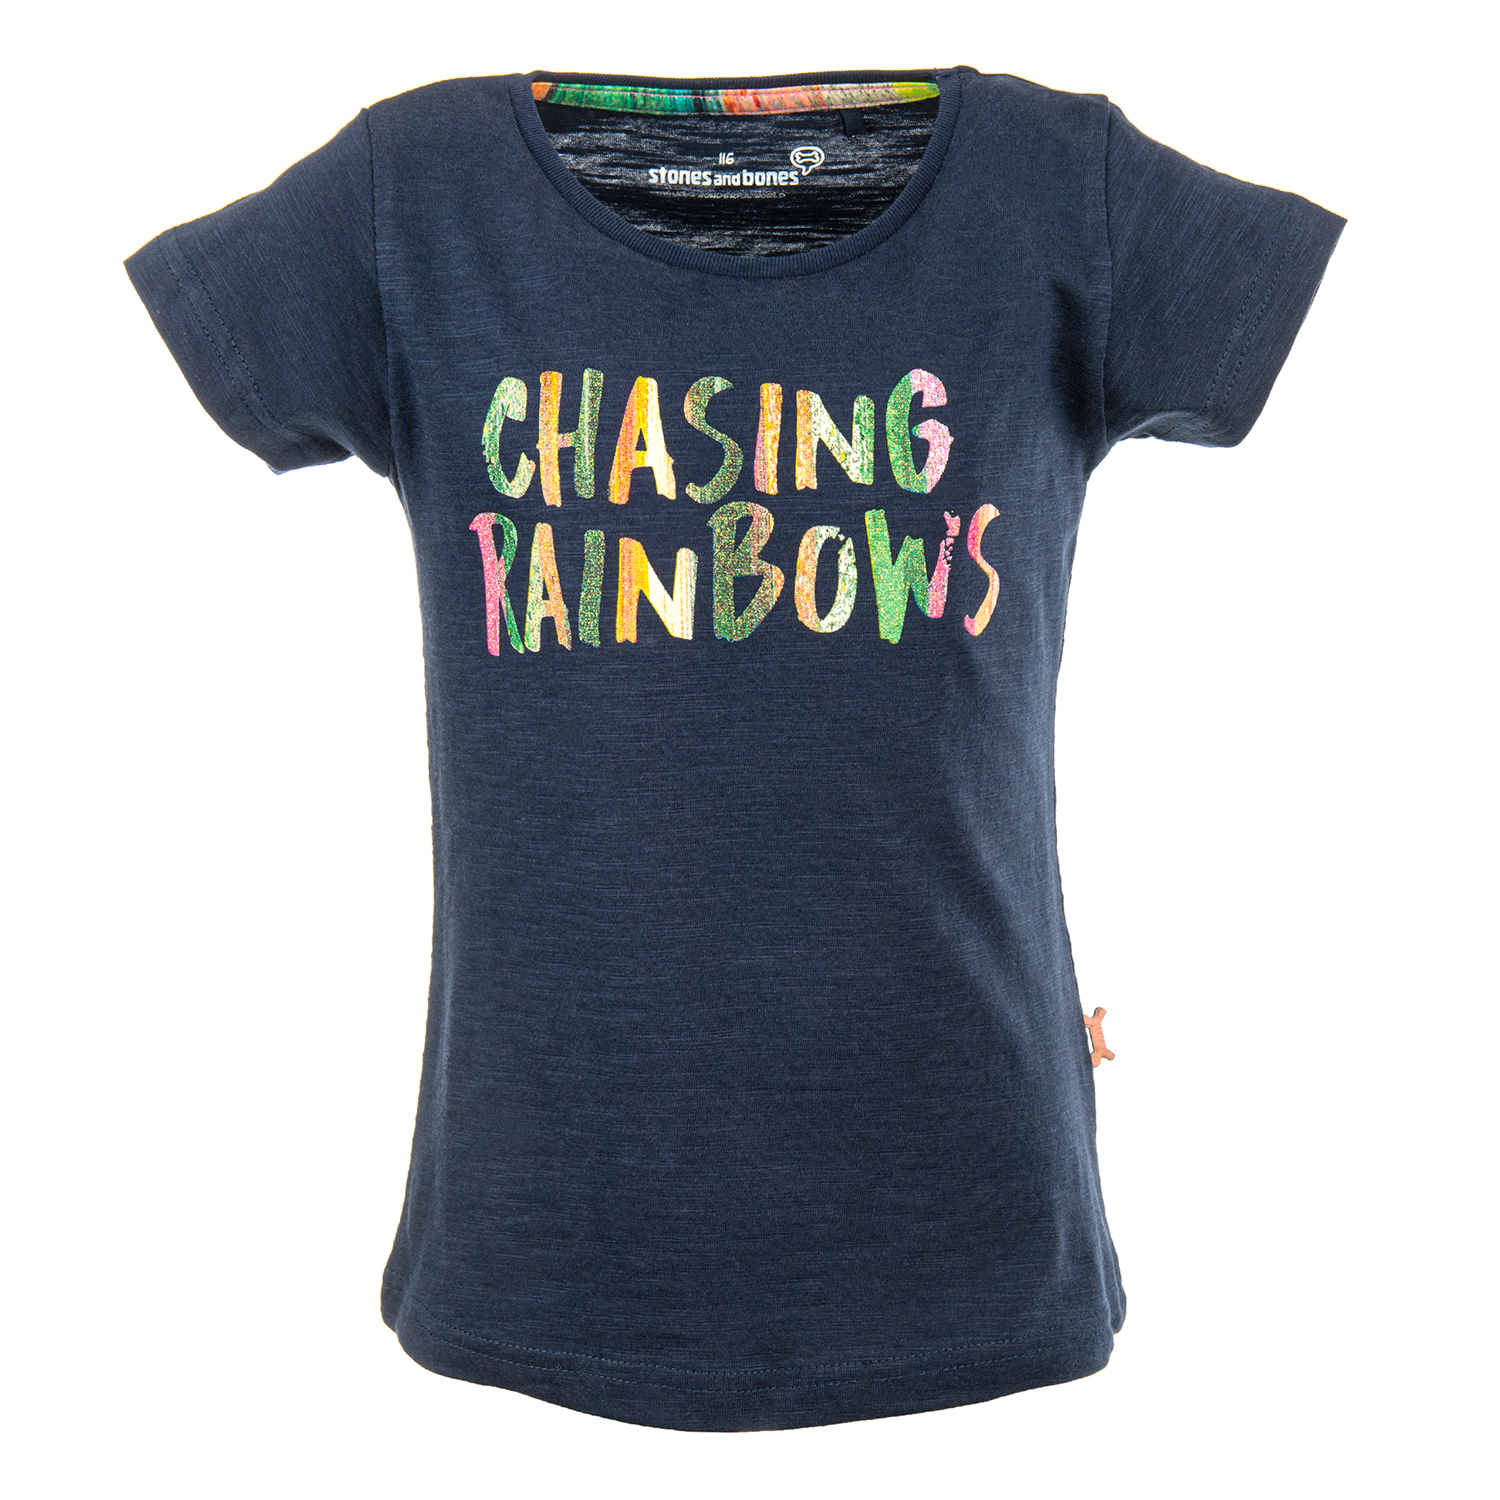 Camille - CHASING RAINBOWS navy